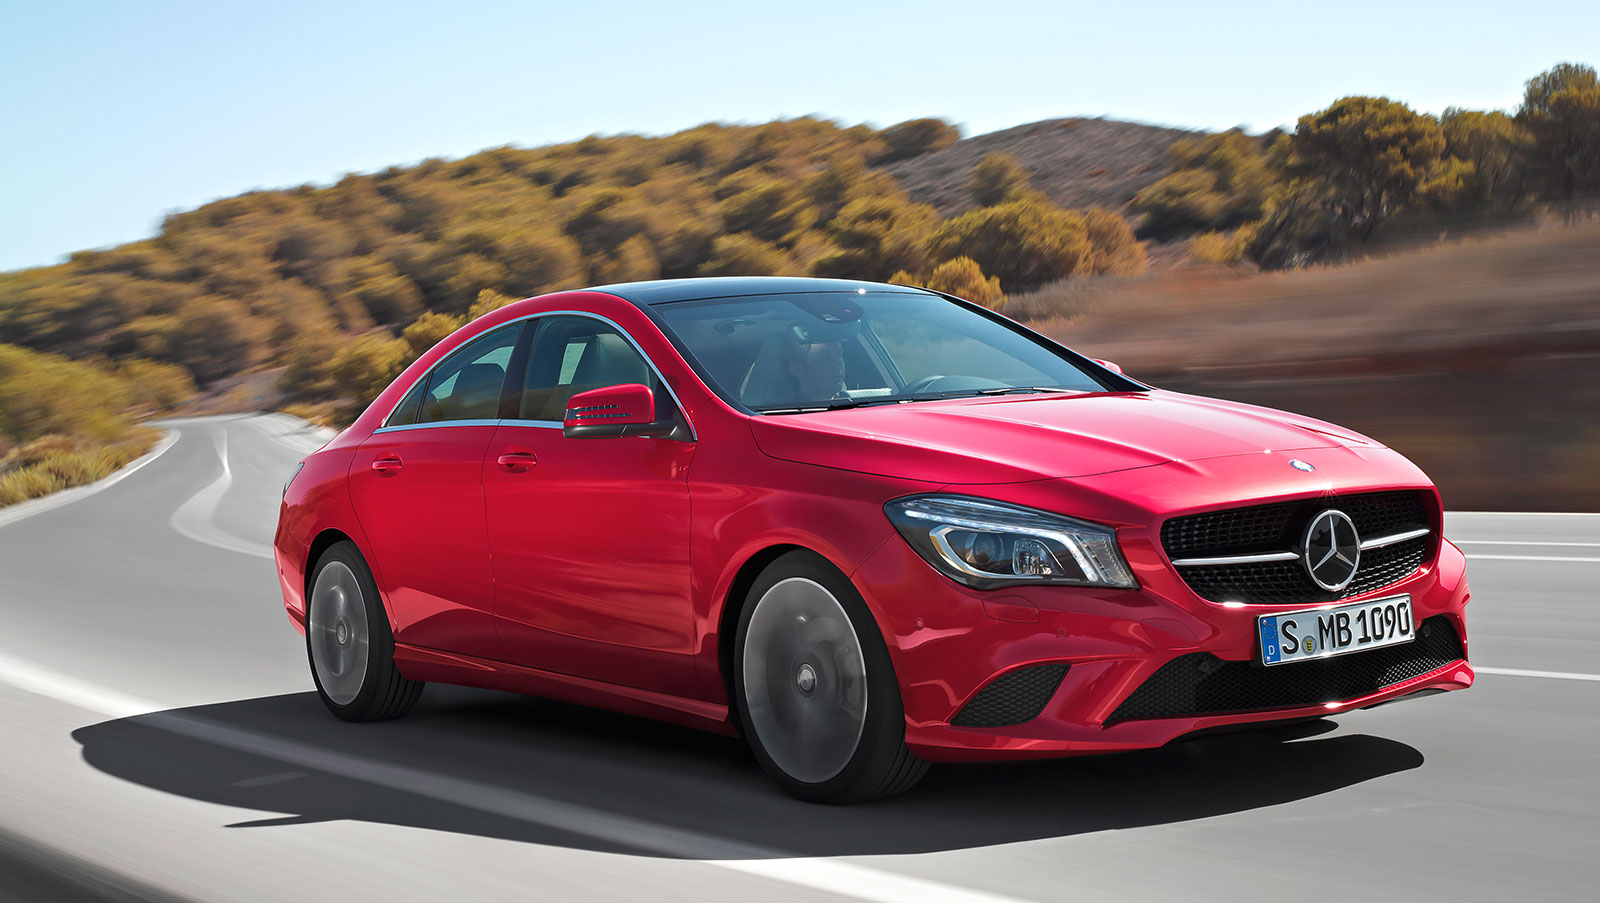 2015 mercedes benz cla new model year updates for New cla mercedes benz